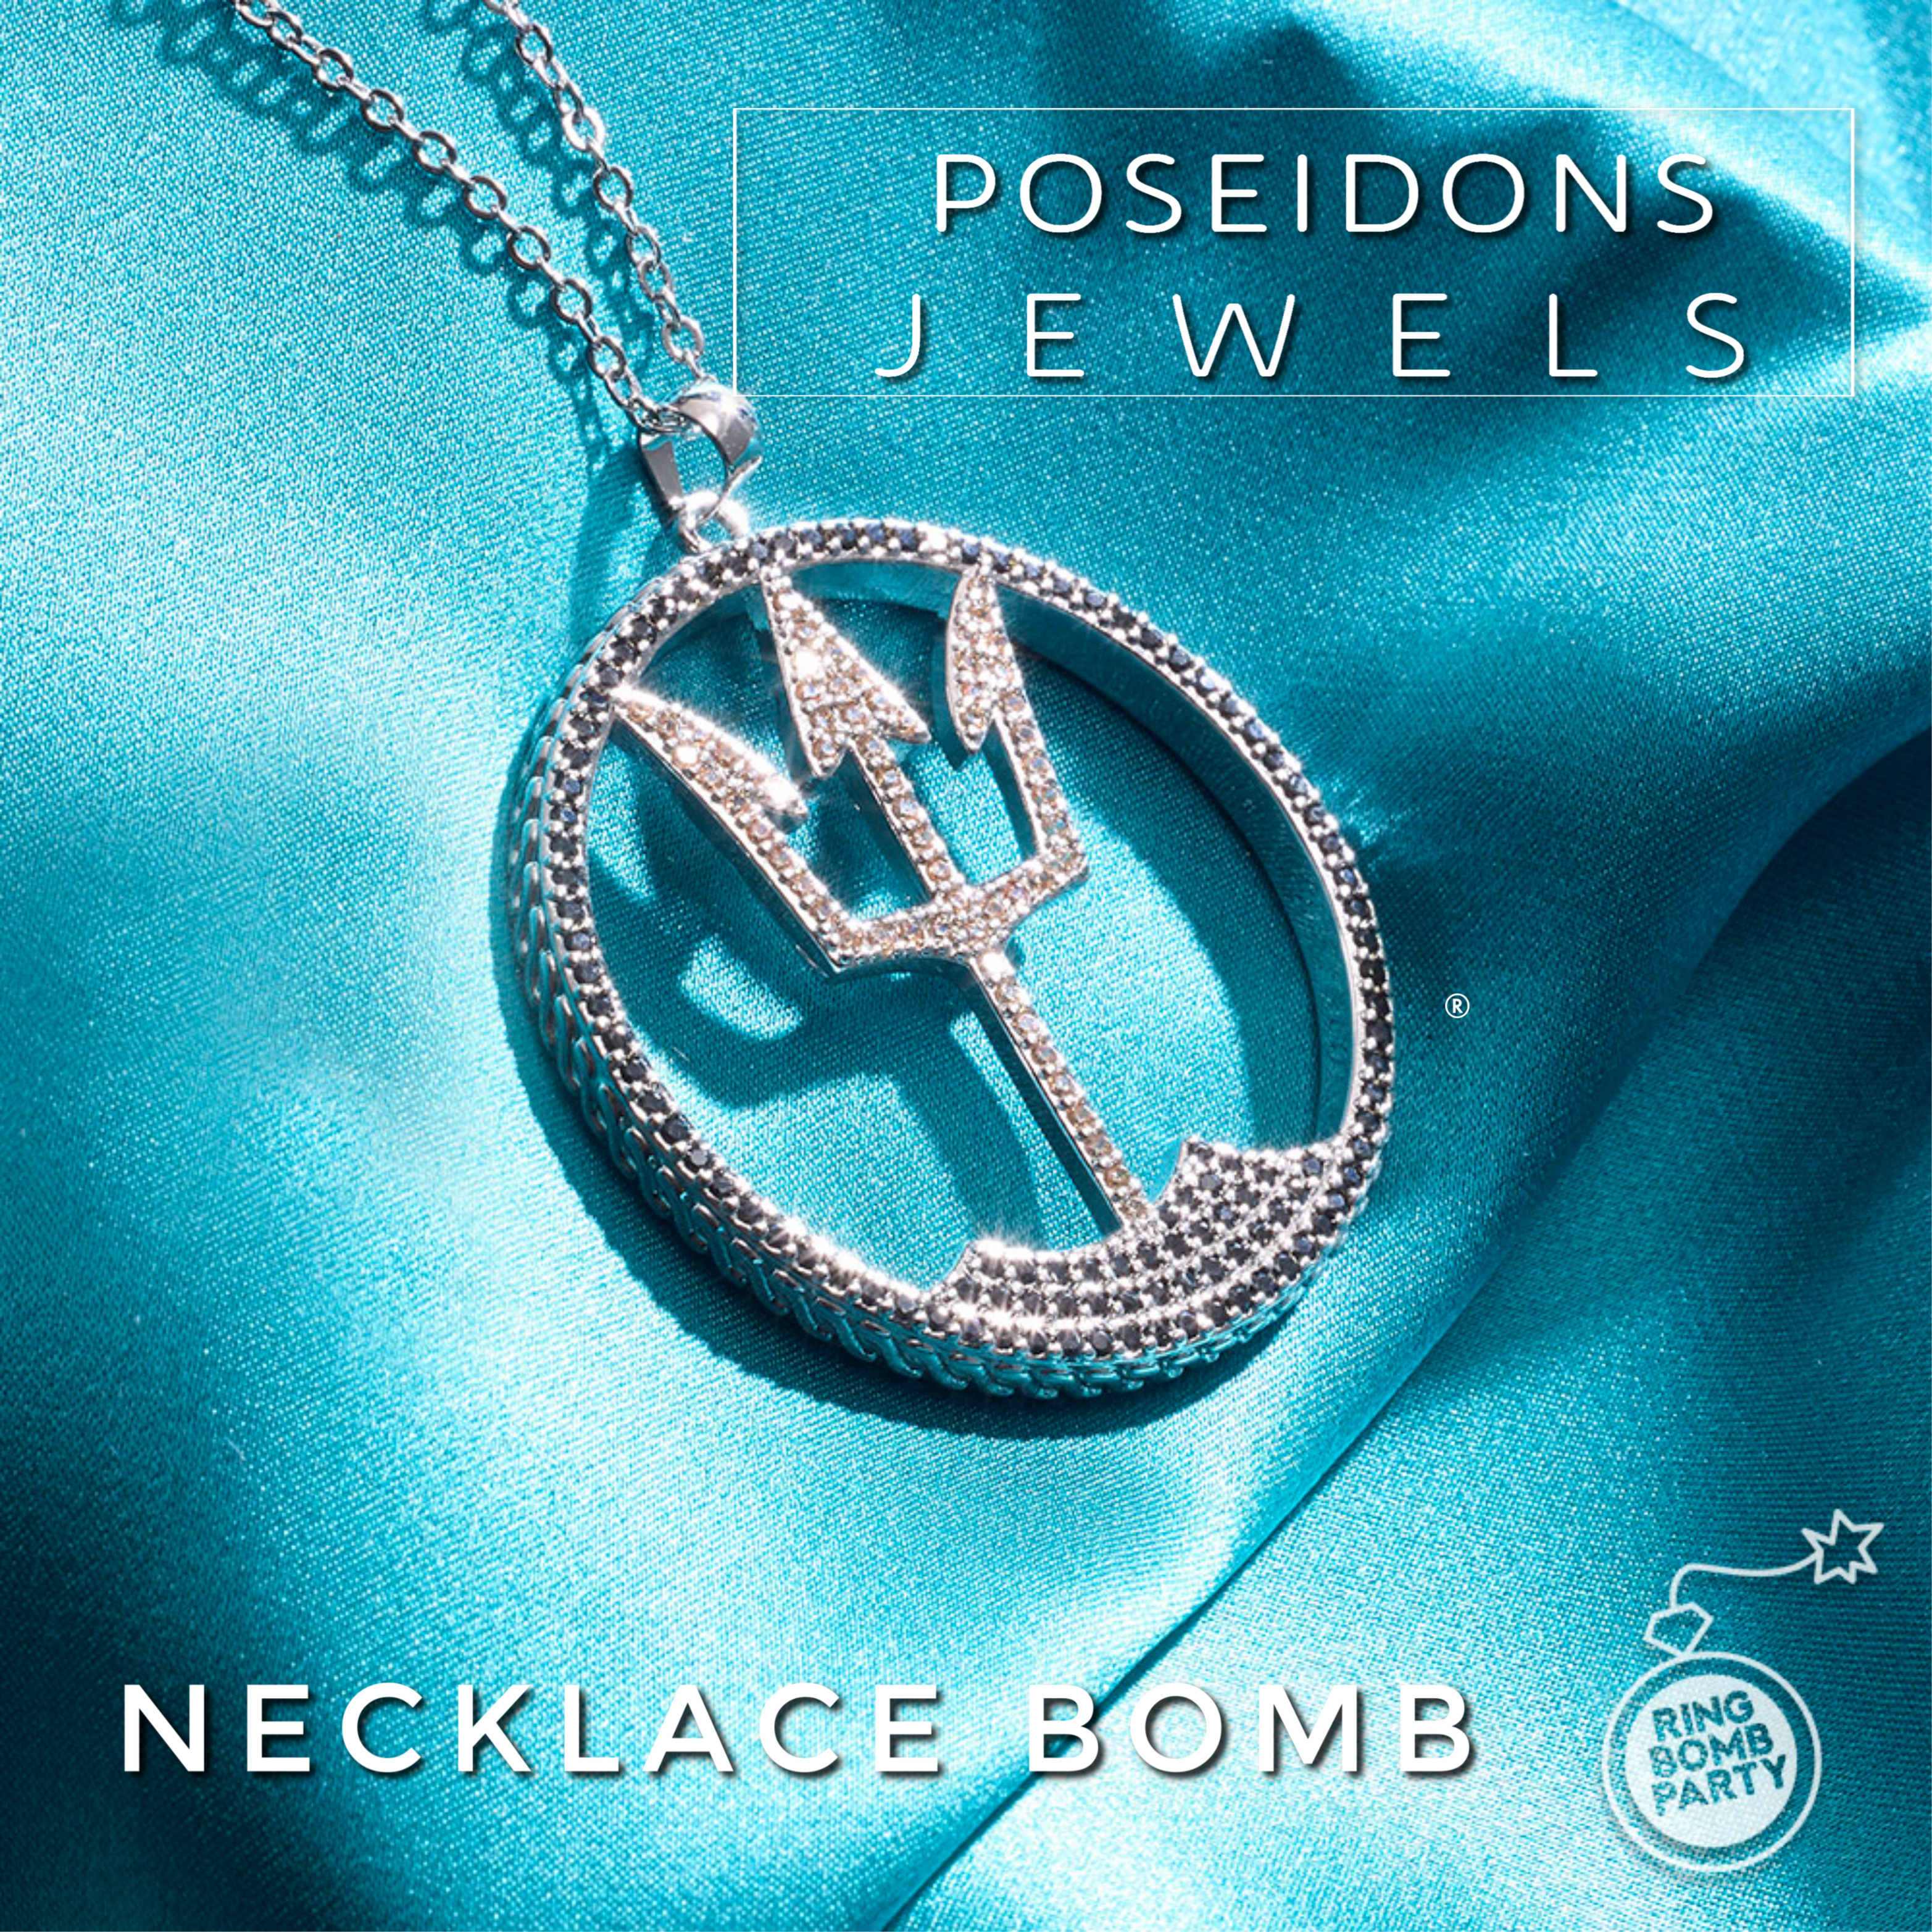 Image for Poseidon's Jewels - Necklace